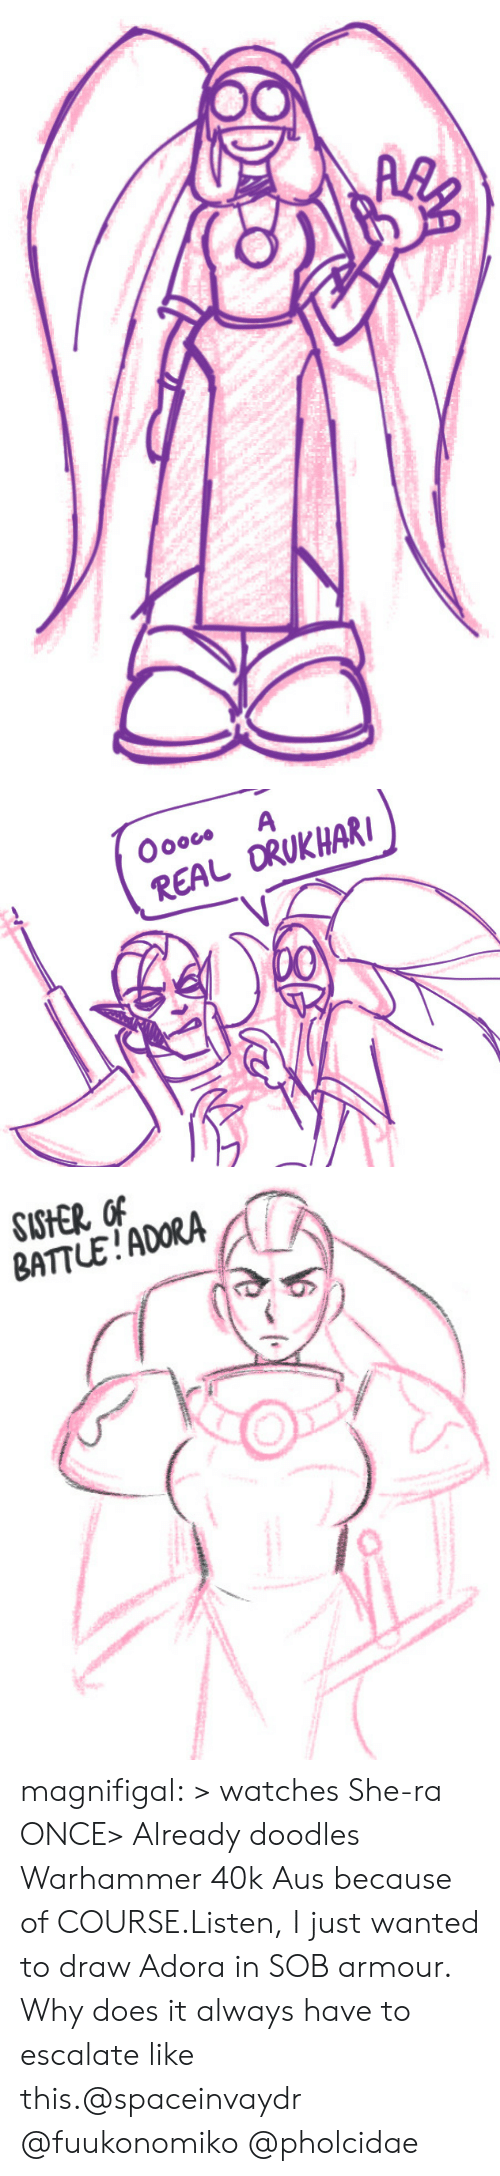 Watches: Oooco  A  REAL ORUKHAR  00   SISHER OF  BATTLE!ADORA magnifigal:  > watches She-ra ONCE> Already doodles Warhammer 40k Aus because of COURSE.Listen, I just wanted to draw Adora in SOB armour. Why does it always have to escalate like this.@spaceinvaydr @fuukonomiko @pholcidae